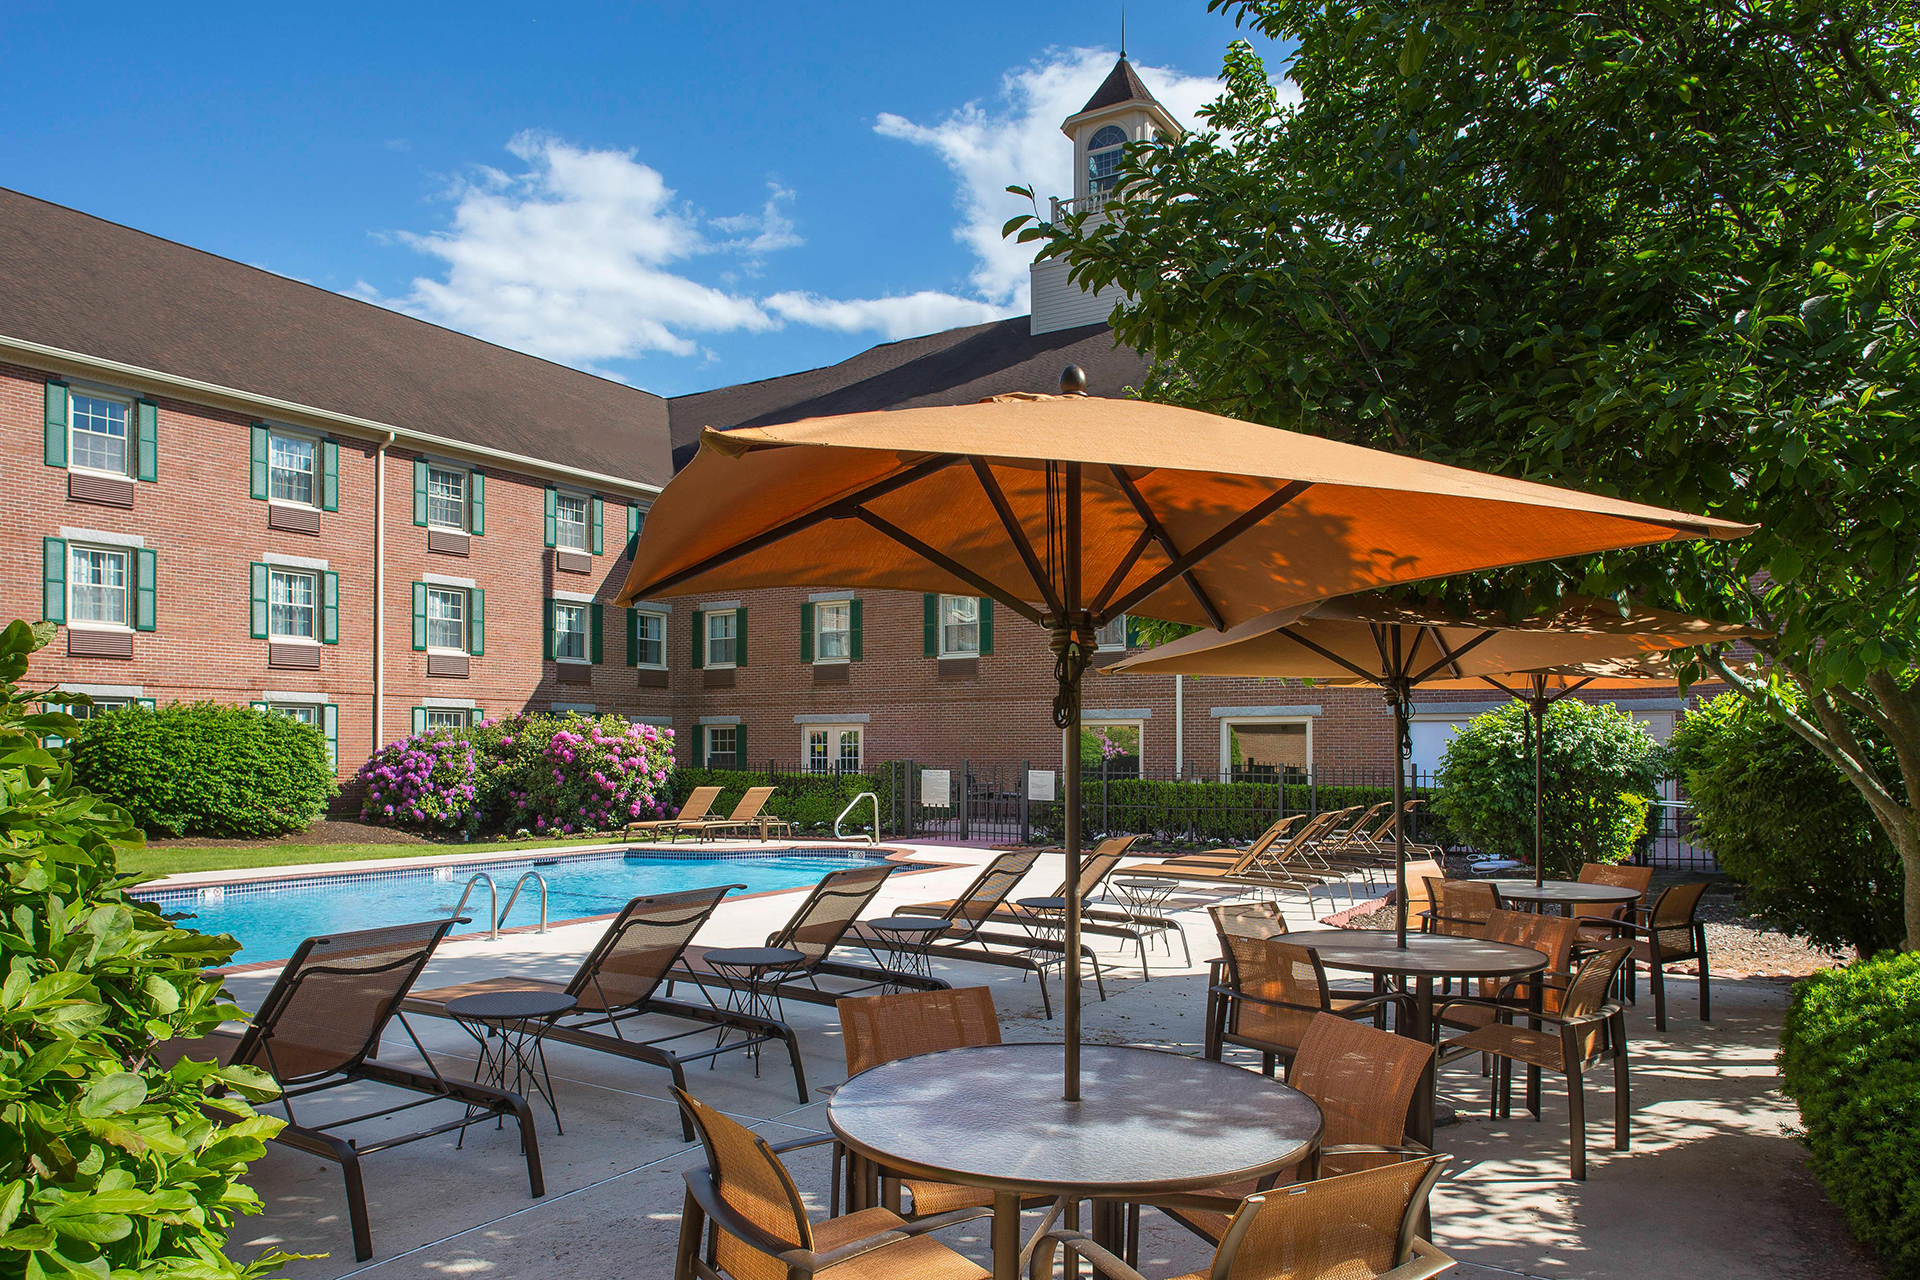 Sonesta Select Boston Lowell Outdoor Pool